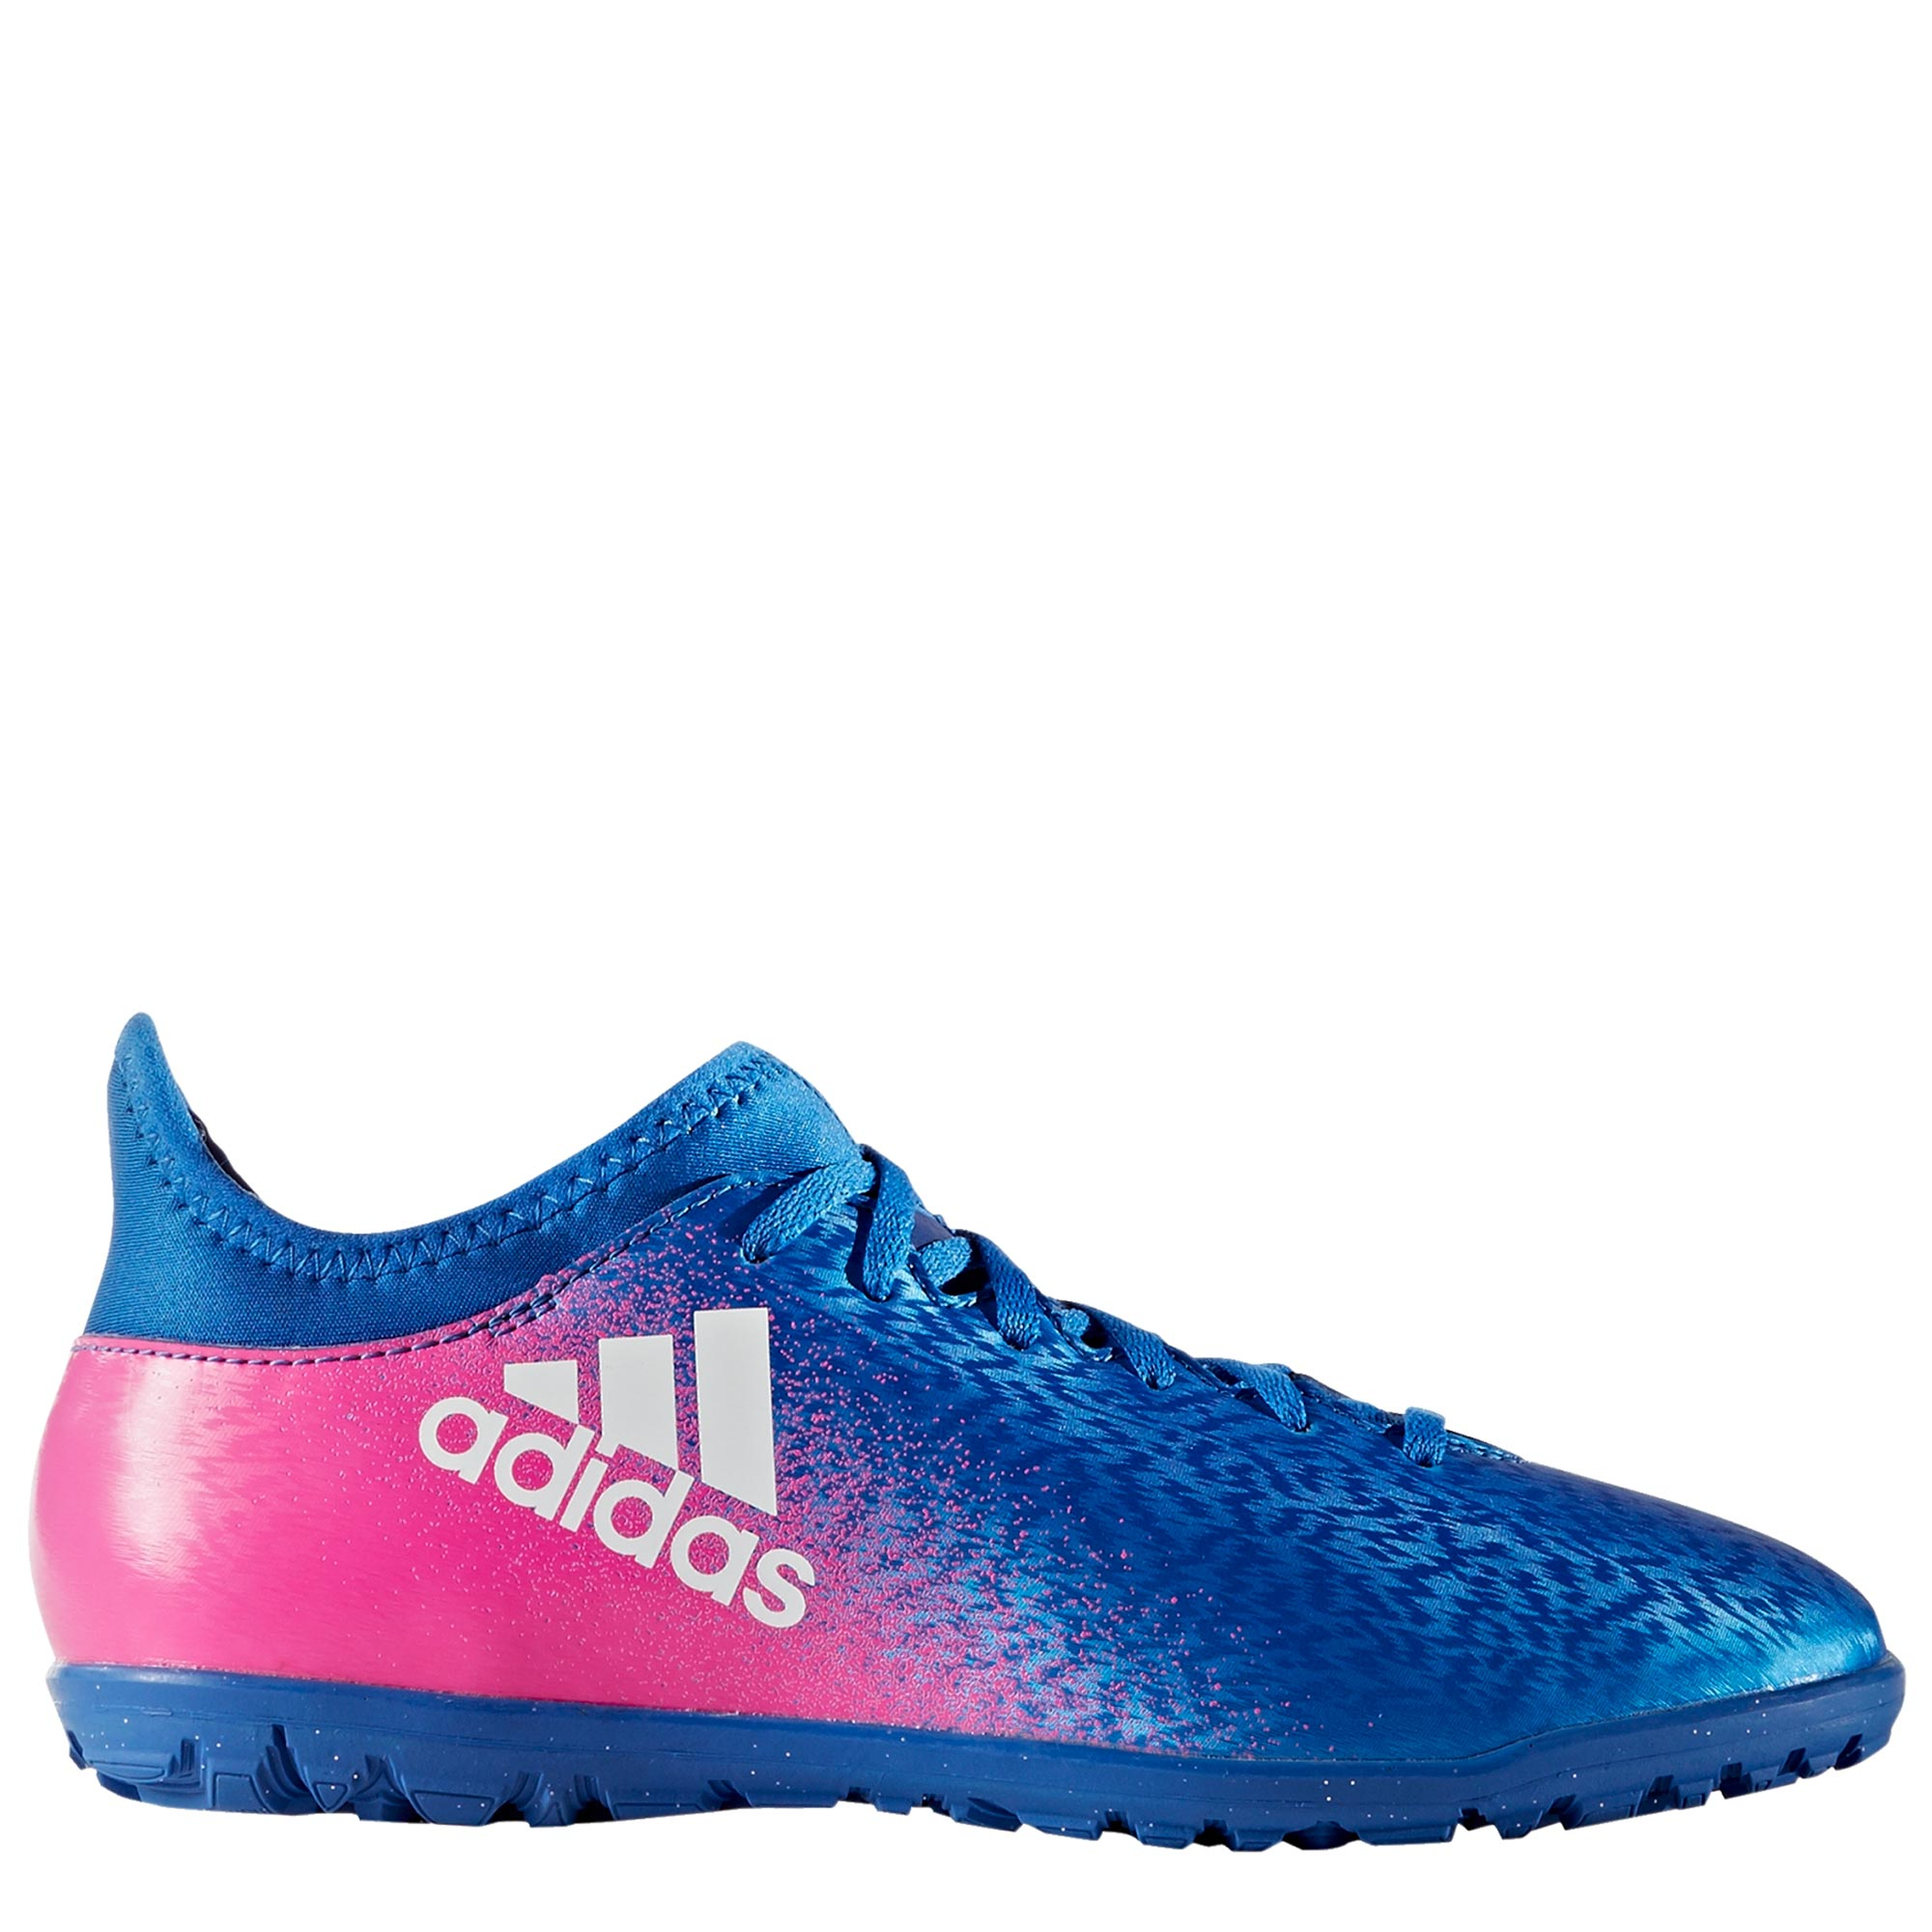 adidas X 16.3 Astroturf Trainers - Blue/White/Shock Pink - Kids